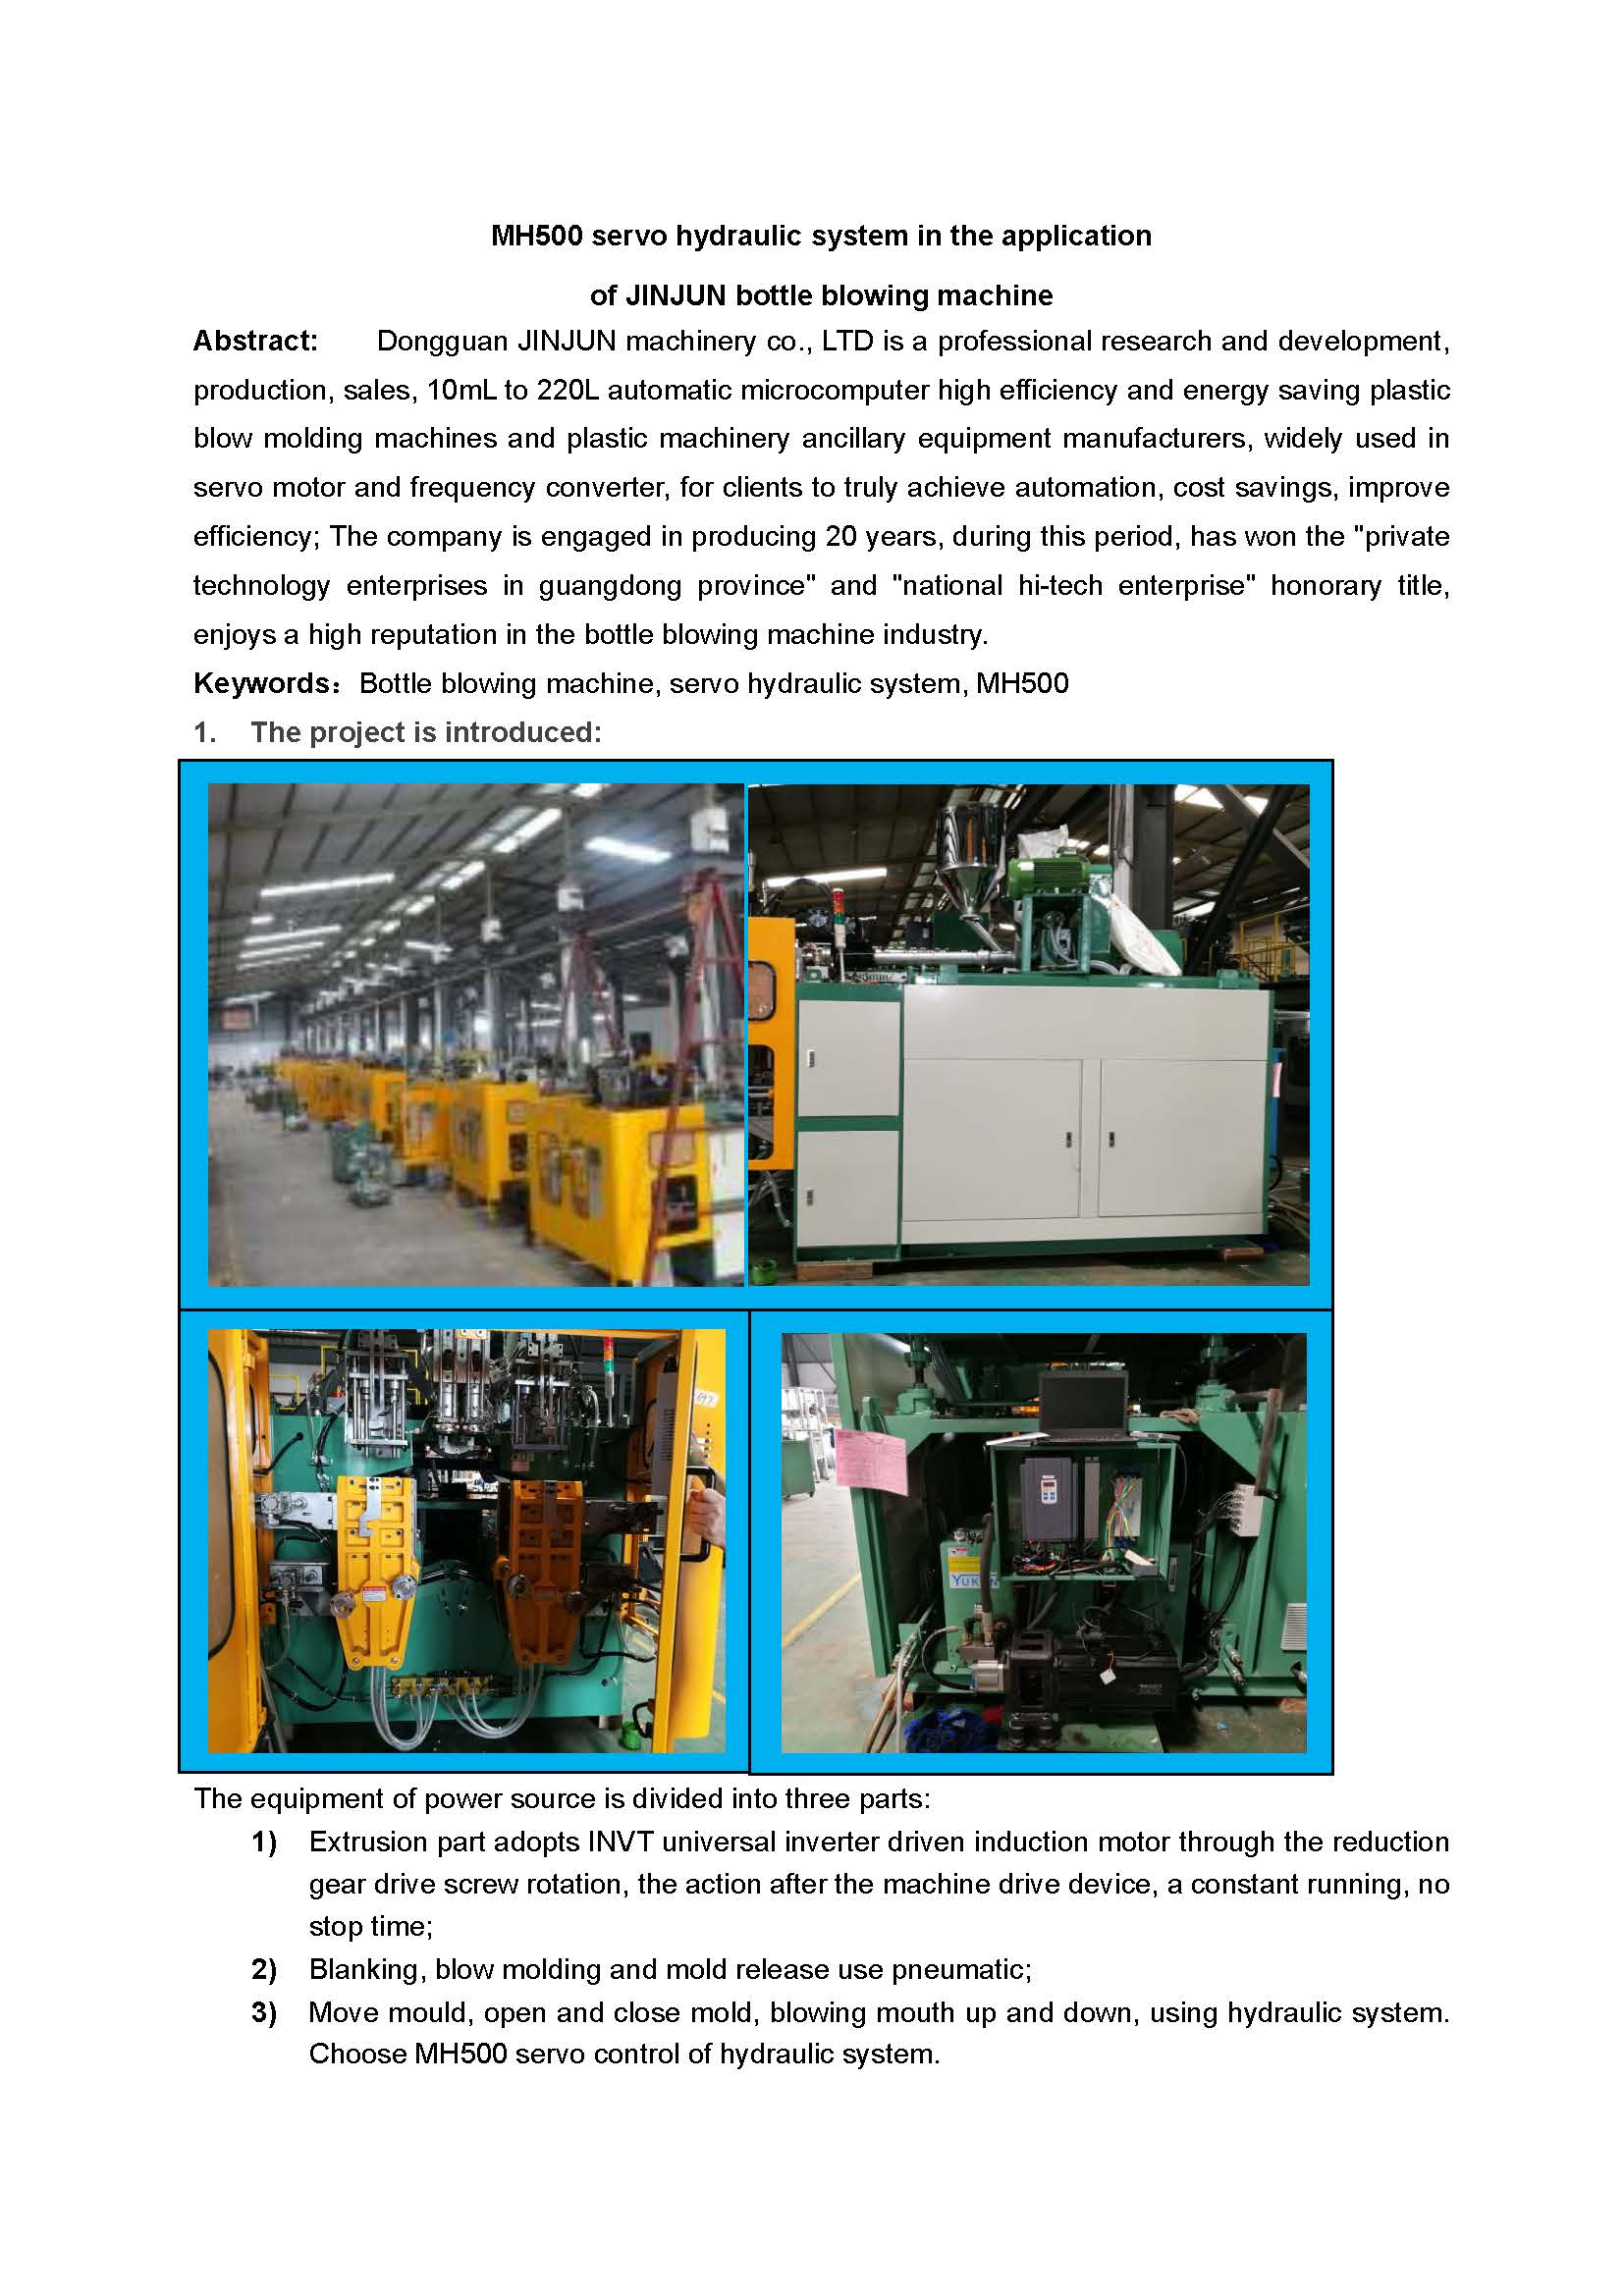 MH500 servo hydraulic system in the application of JINJUN bottle blowing machine